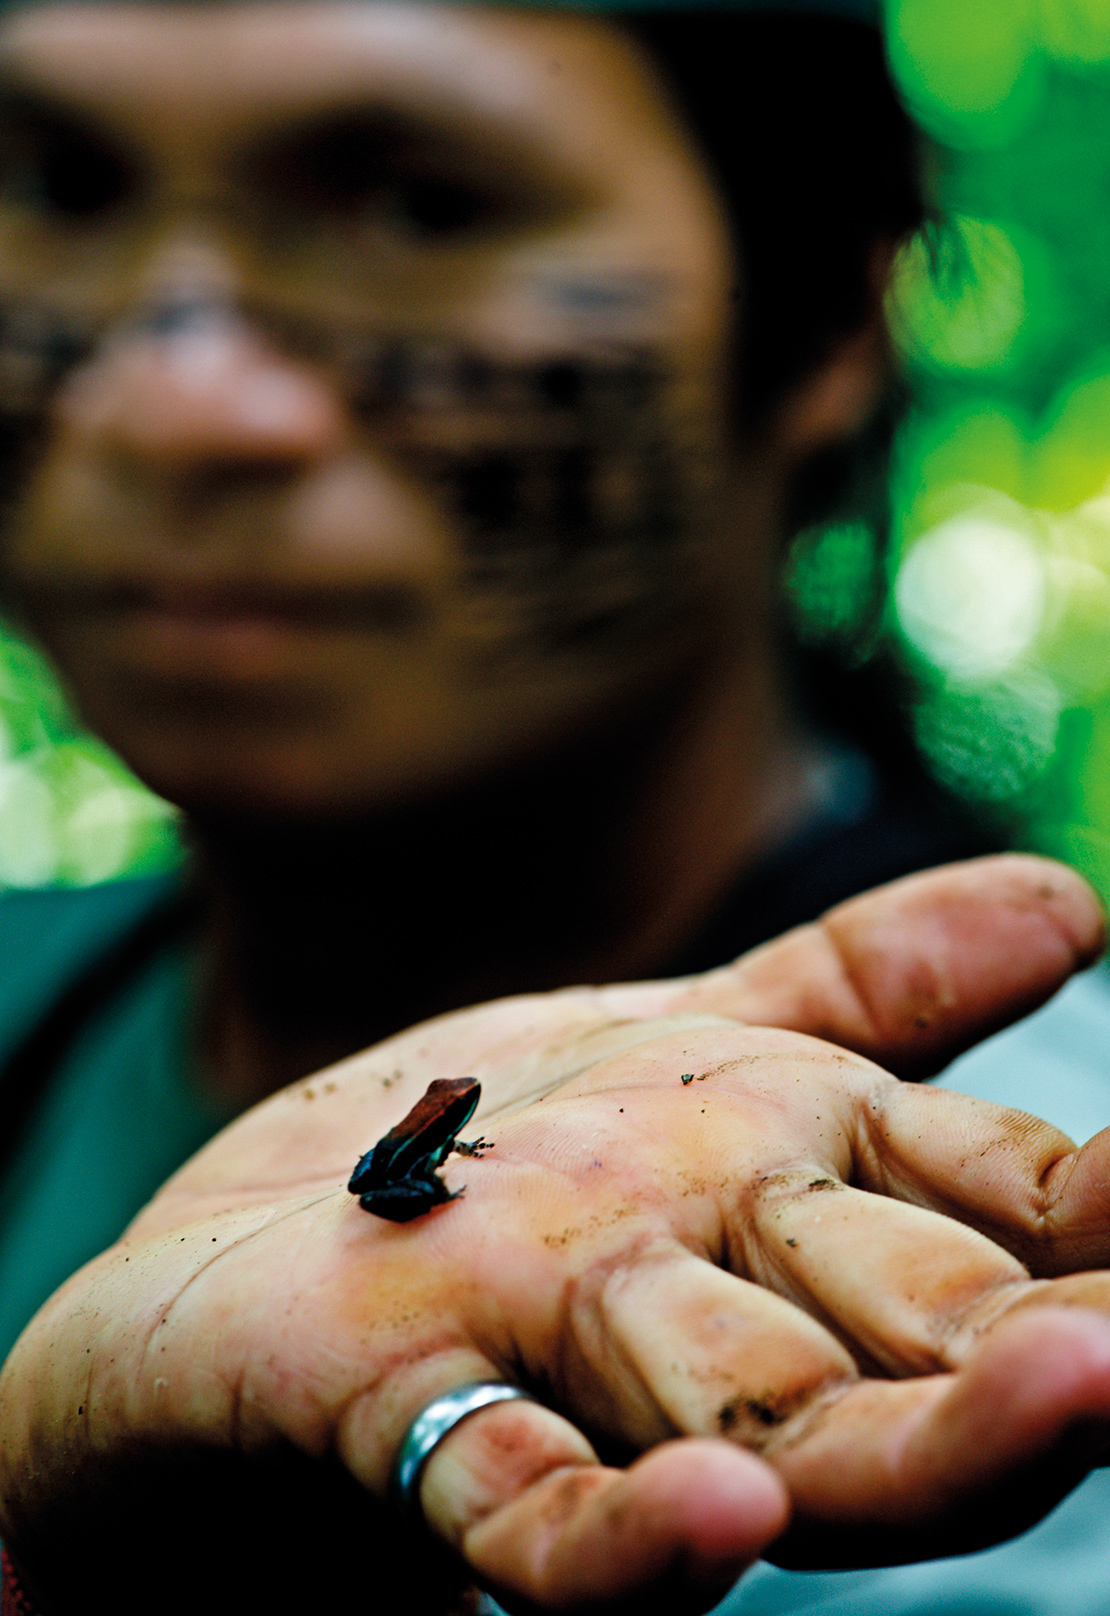 A man holds up a small species of frog, an example of the biodiversity of the Ecuadorian rainforest. Credit: James Morgan.